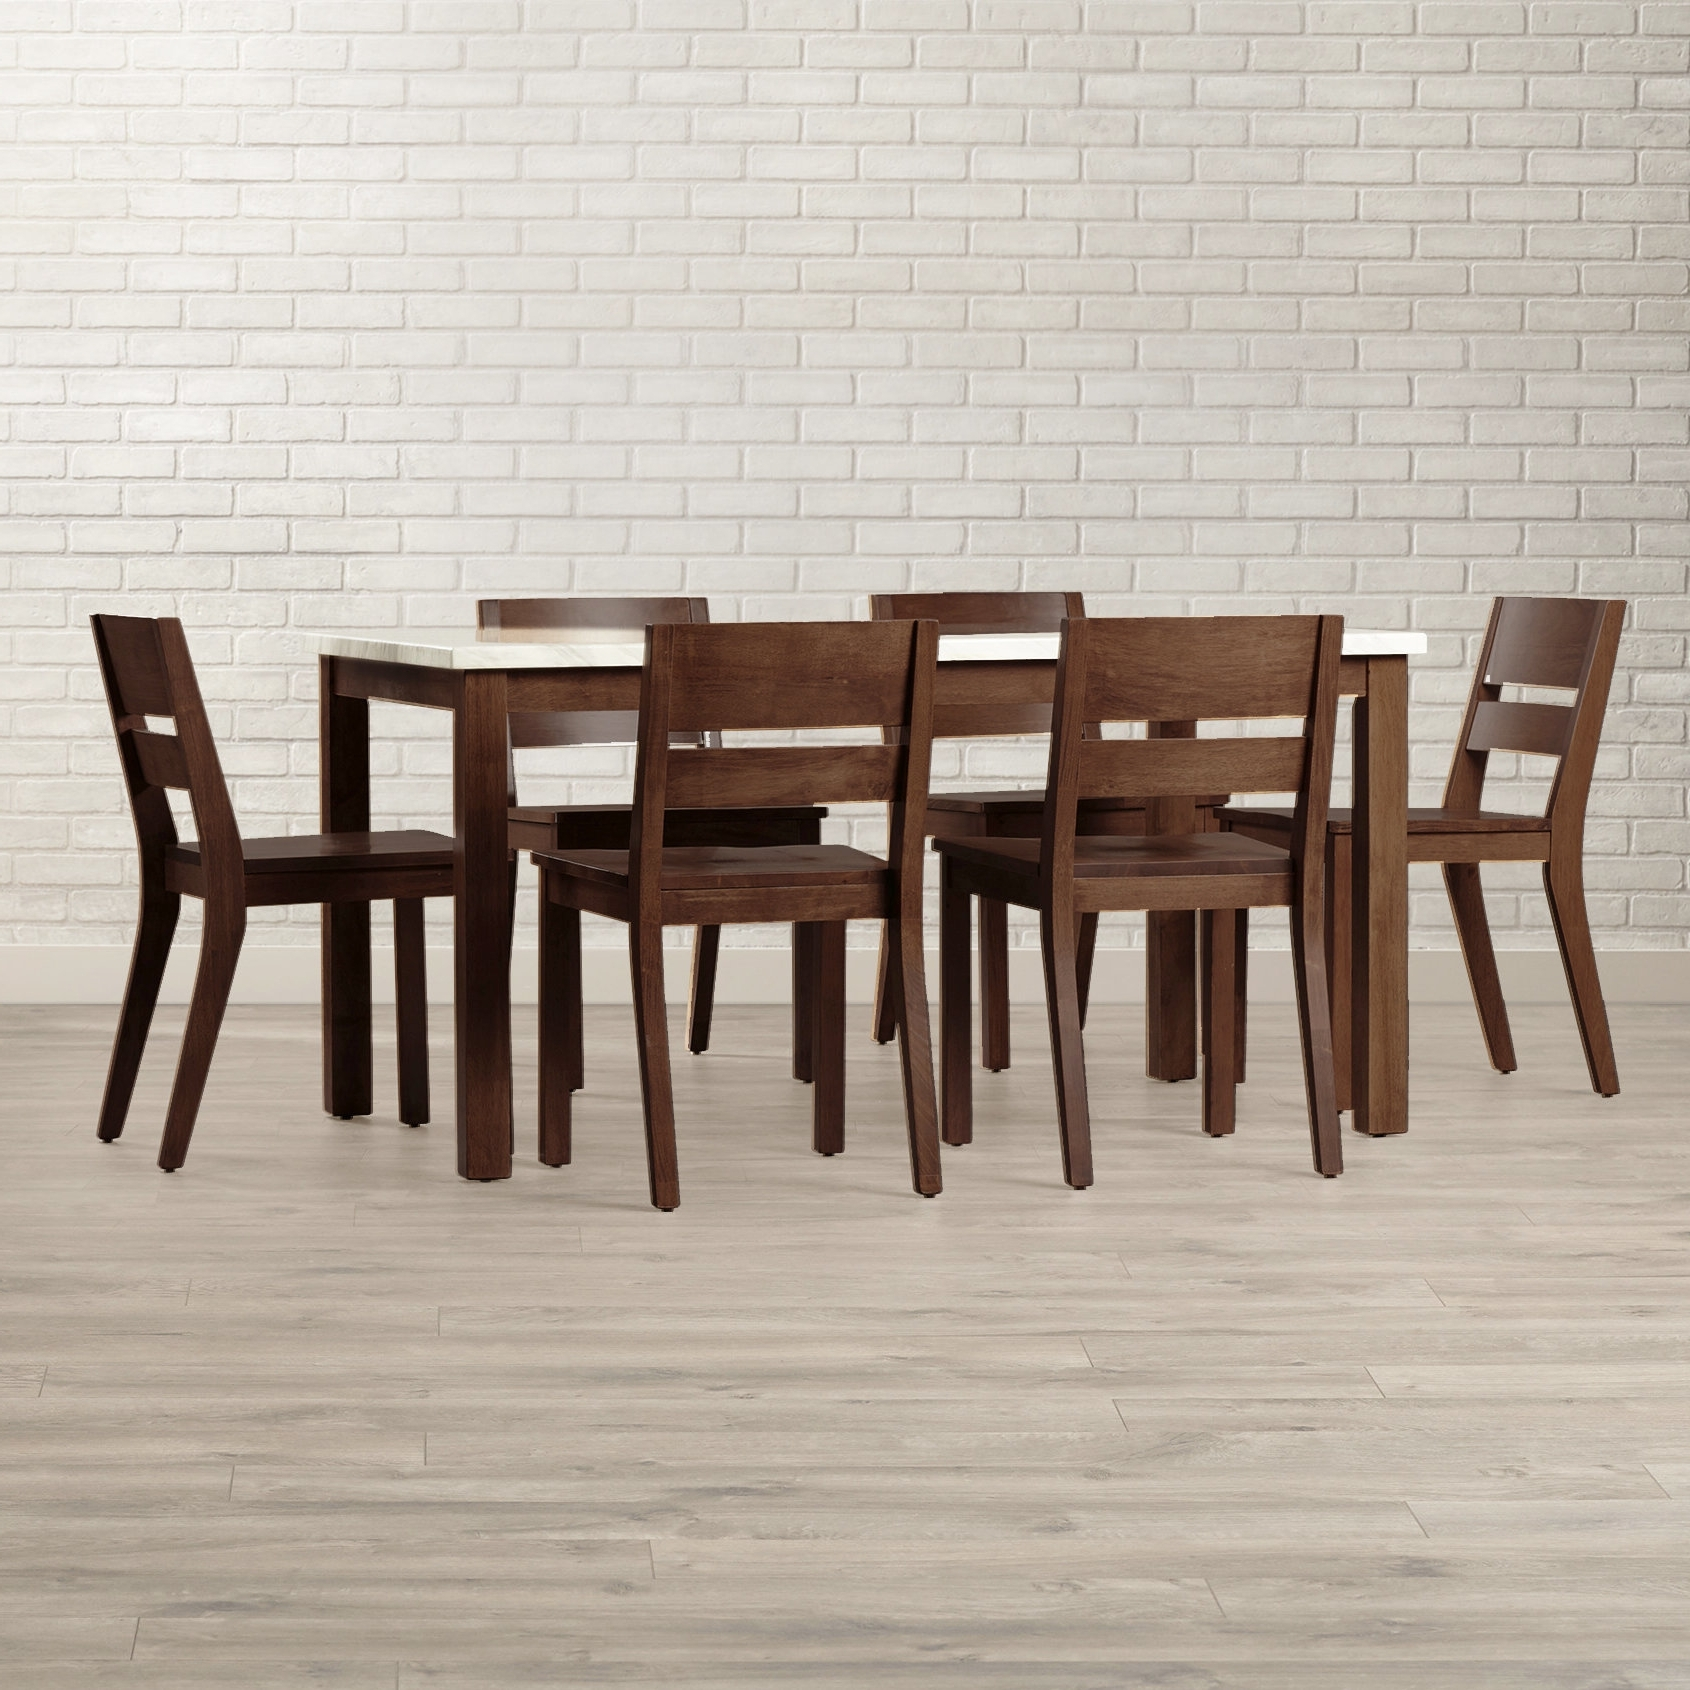 Preferred Candice Ii 7 Piece Extension Rectangular Dining Sets With Slat Back Side Chairs Throughout Brayden Studio Losey 7 Piece Dining Set & Reviews (View 3 of 25)